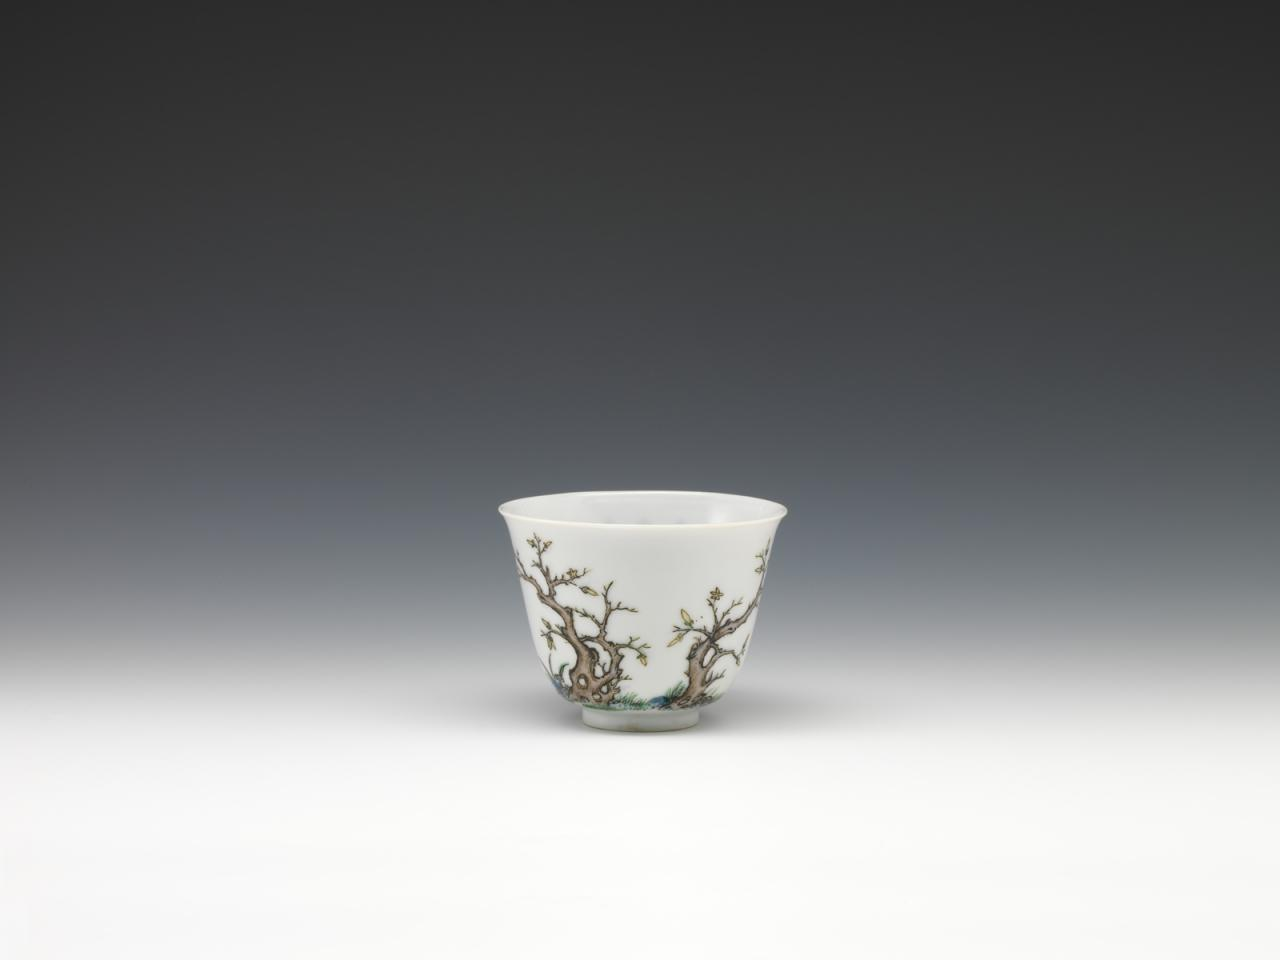 """Twelve cups with flowers representing the twelve months in wucai enamels"" image"